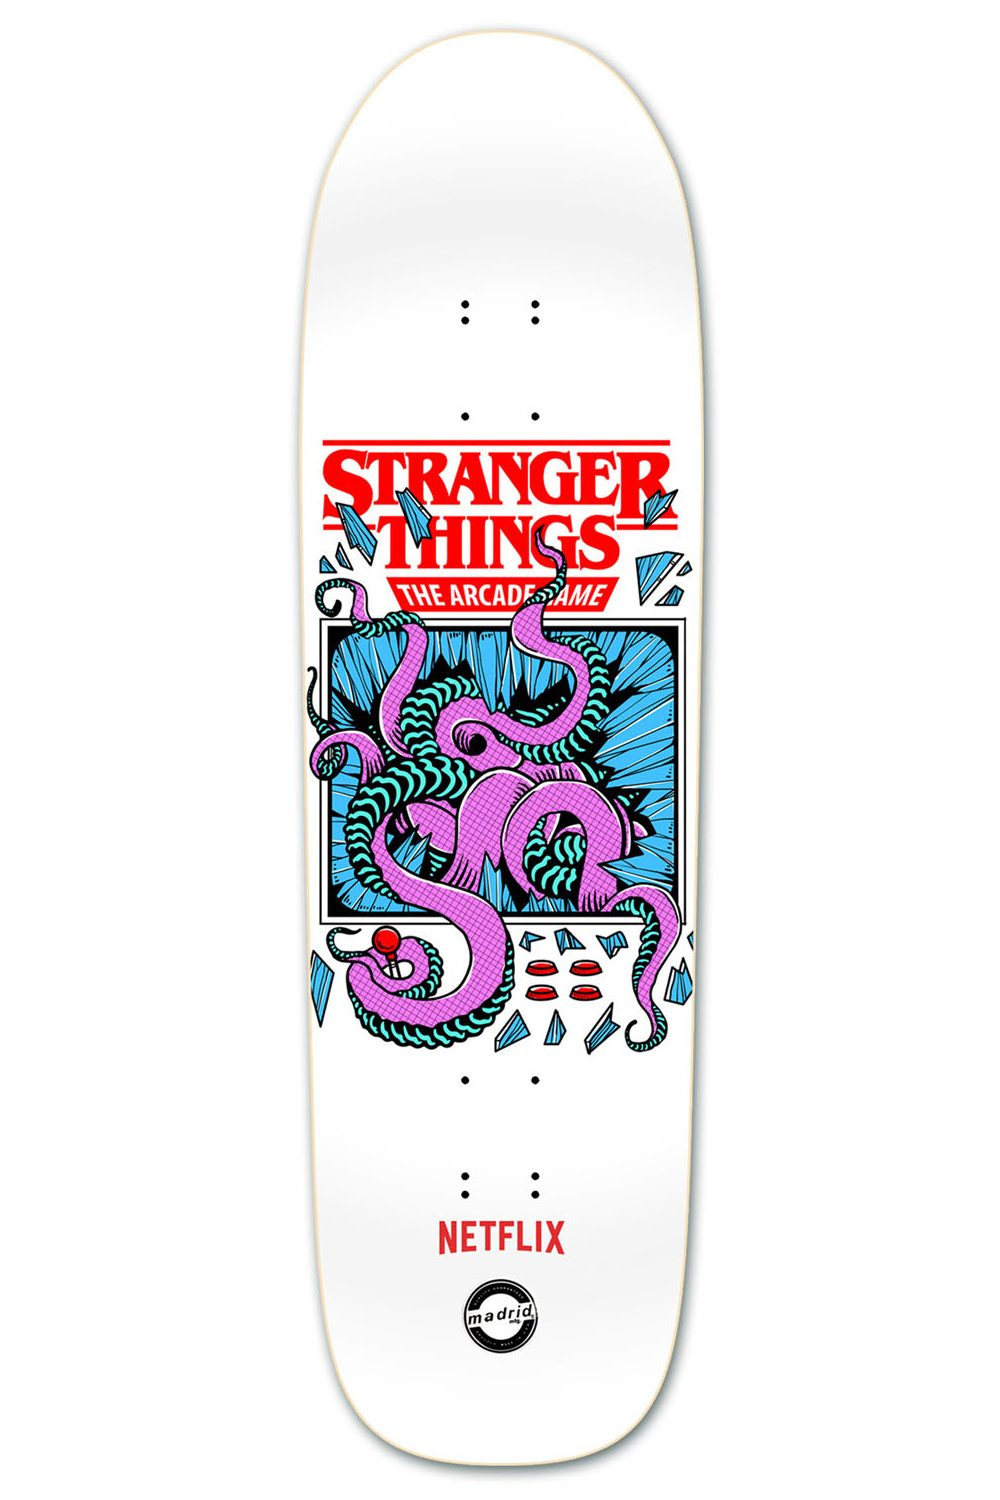 Stranger Things 2 Arcade Deck Madrid Skateboards - New Stranger Things Season 2 Merchandise on the Way as BoxLunch Teams with Netflix